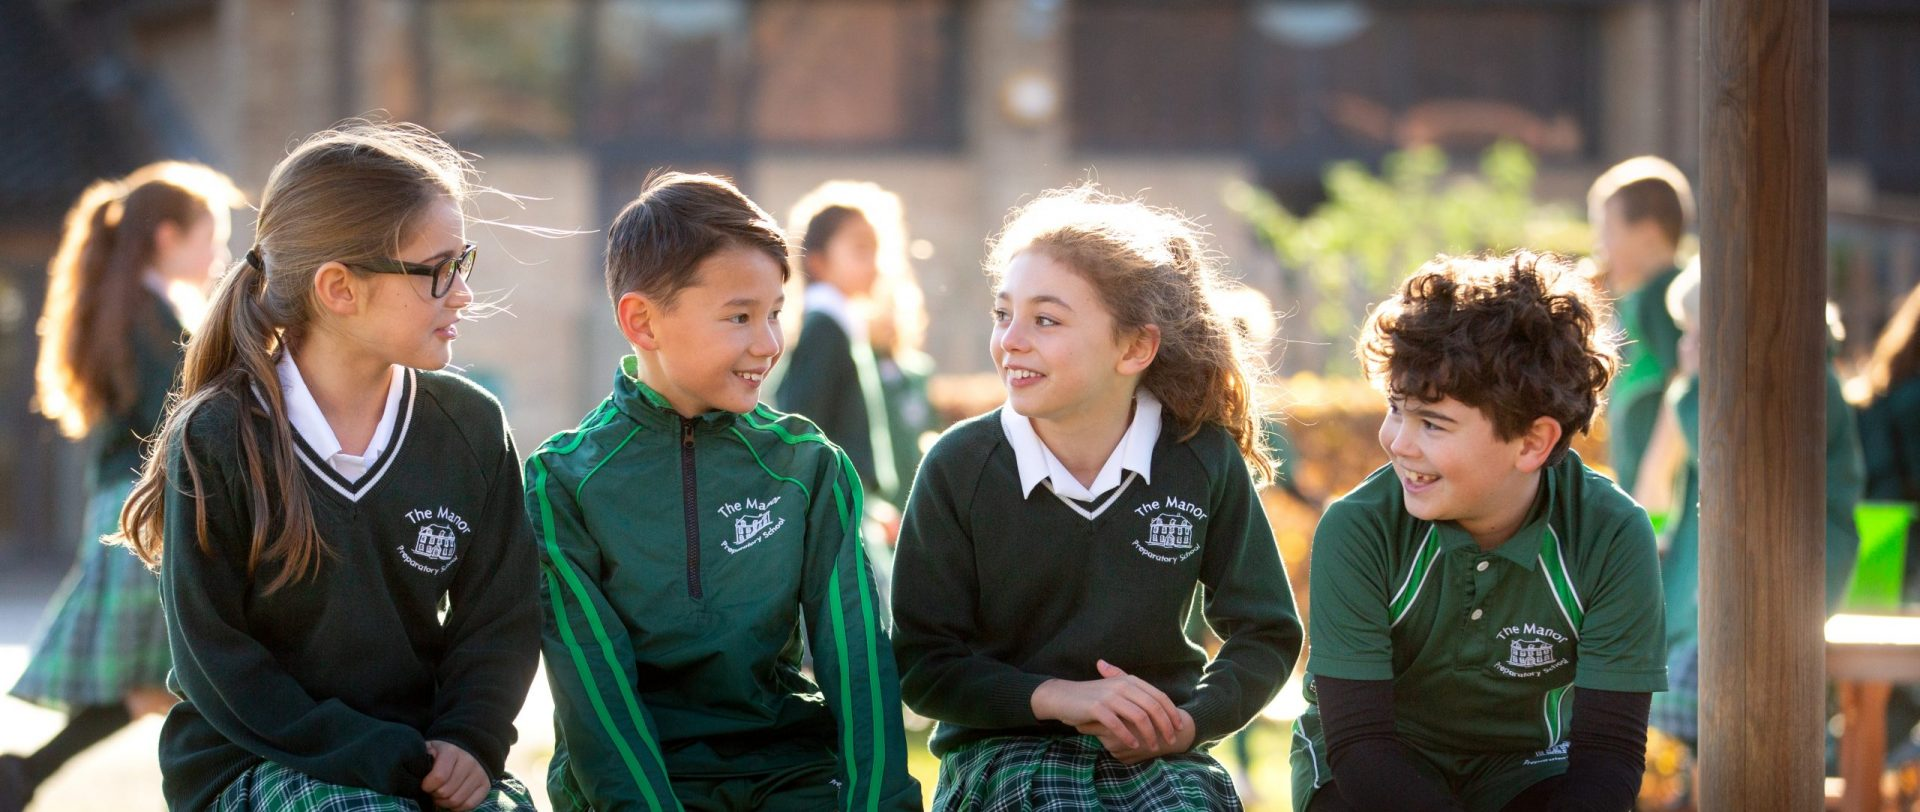 Admissions Forms for Years 3-6